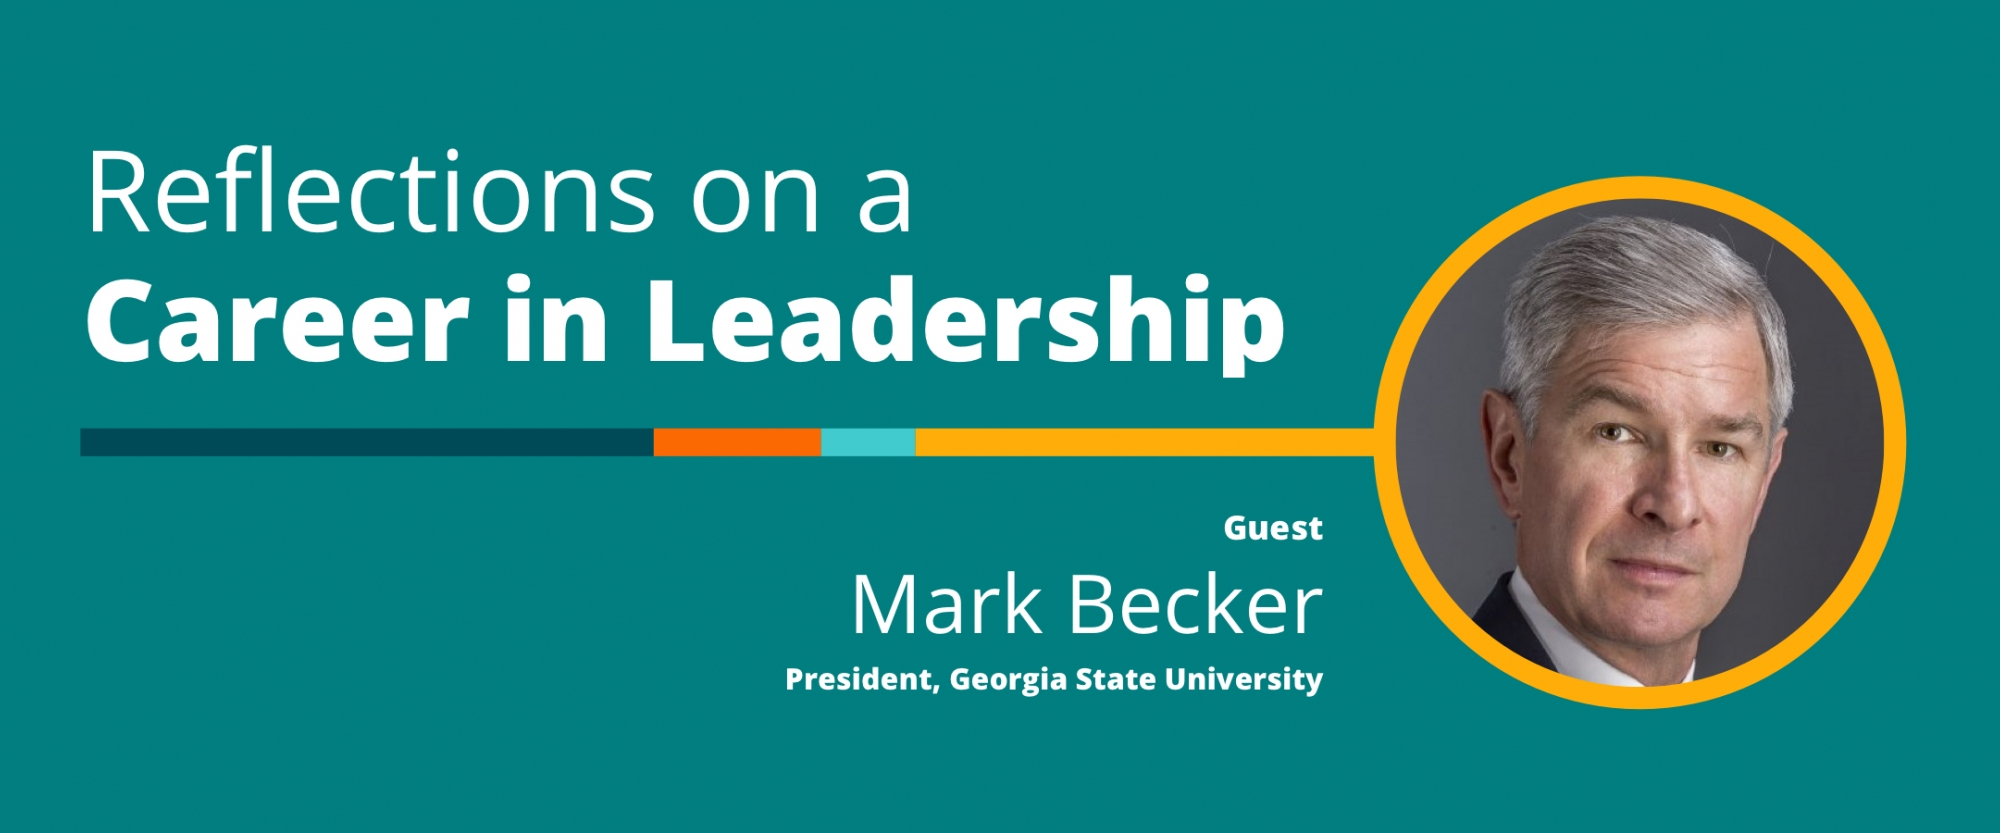 Reflections on a Career in Leadership: A Conversation With Mark Becker, Georgia State University President